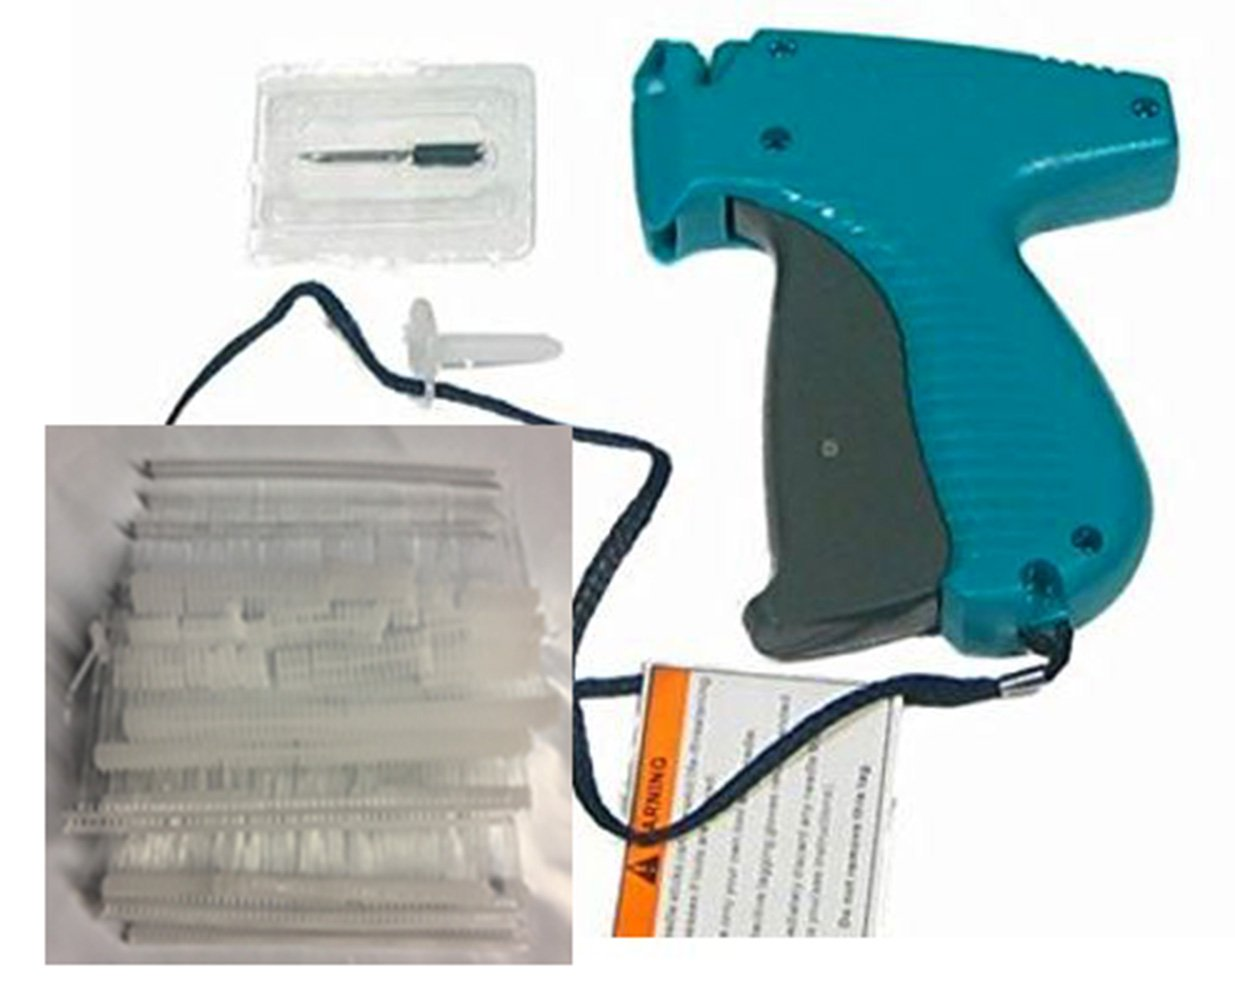 Avery Dennison Tagging Kit with 1 Standard 10651 Tagging Gun and 500 08035 2'' Barbs